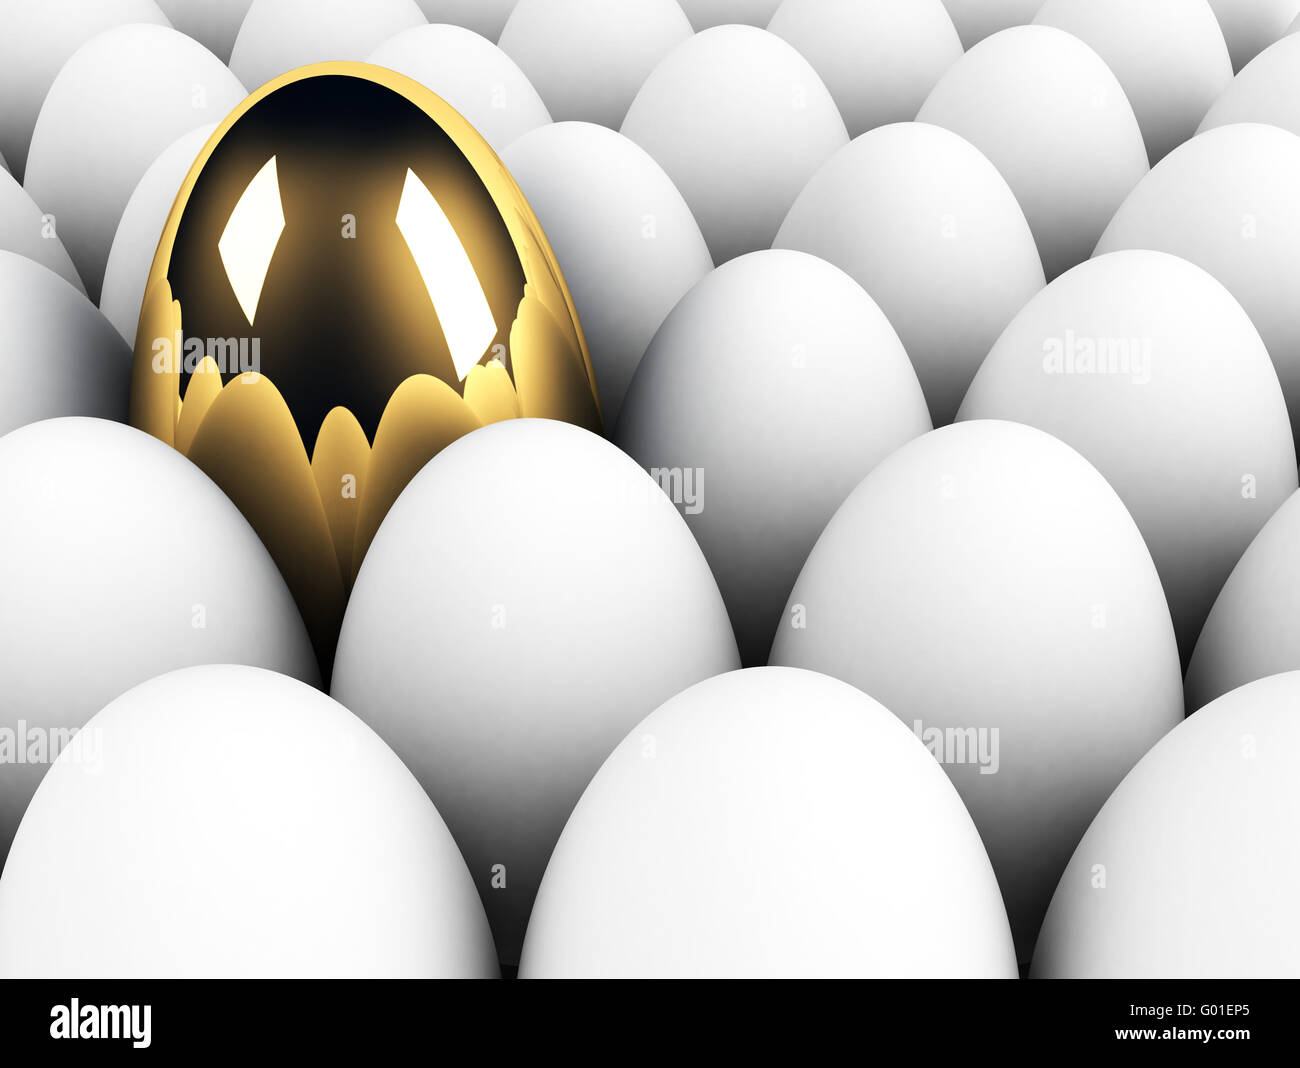 big golden egg in the crowd uniqueness concept - Stock Image